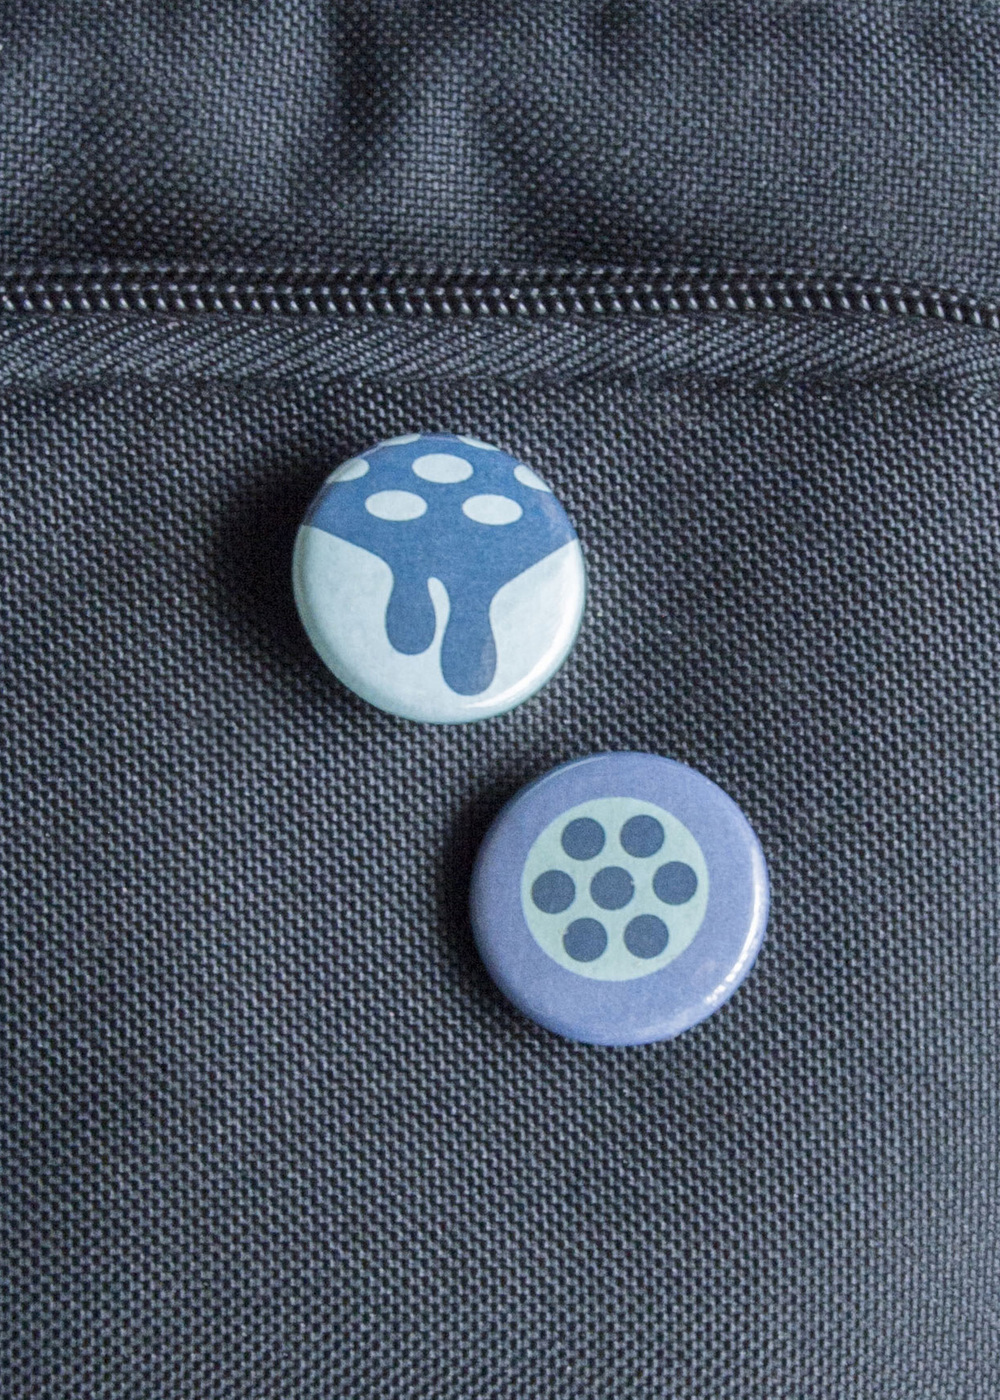 Buttons that were made and placed on a backpack